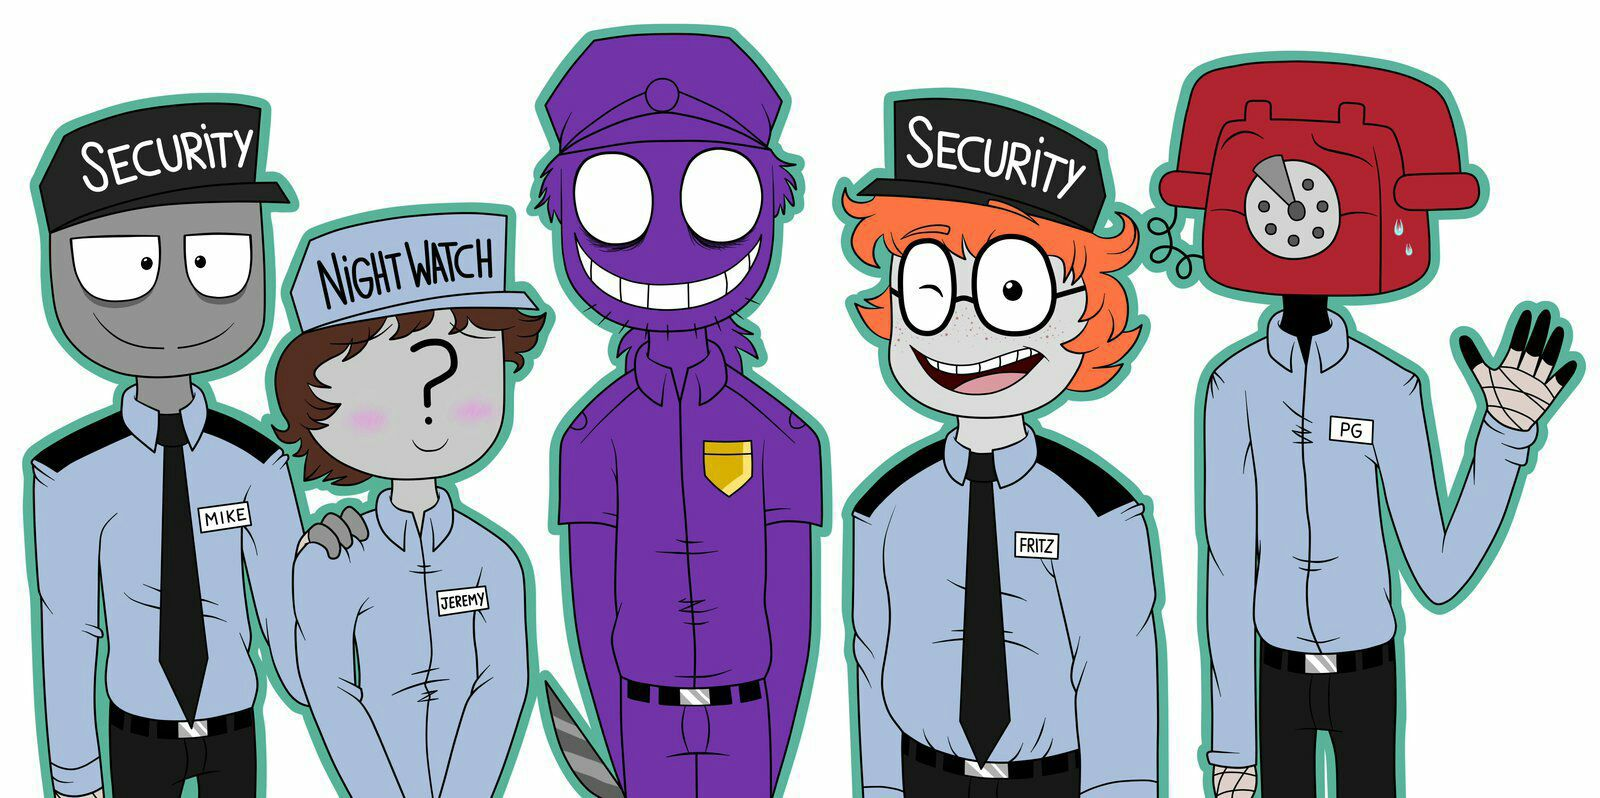 Phone guy x purple guy fanfic lemon -  Fivenightsatfreddys Fnaf Lemon Purpleguy Vincent